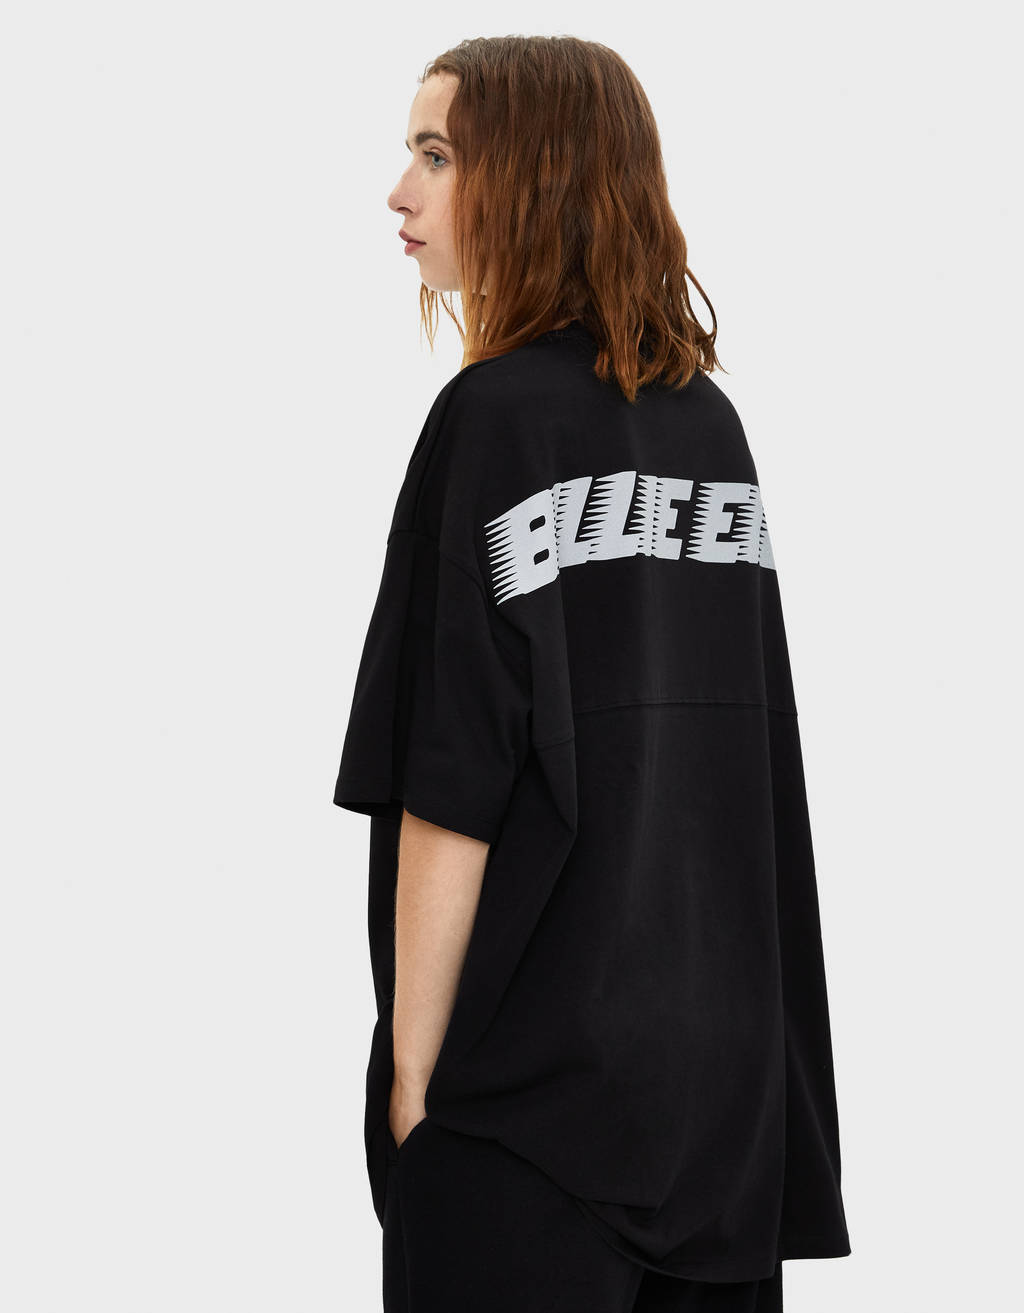 Billie Eilish x Bershka reflective T-shirt